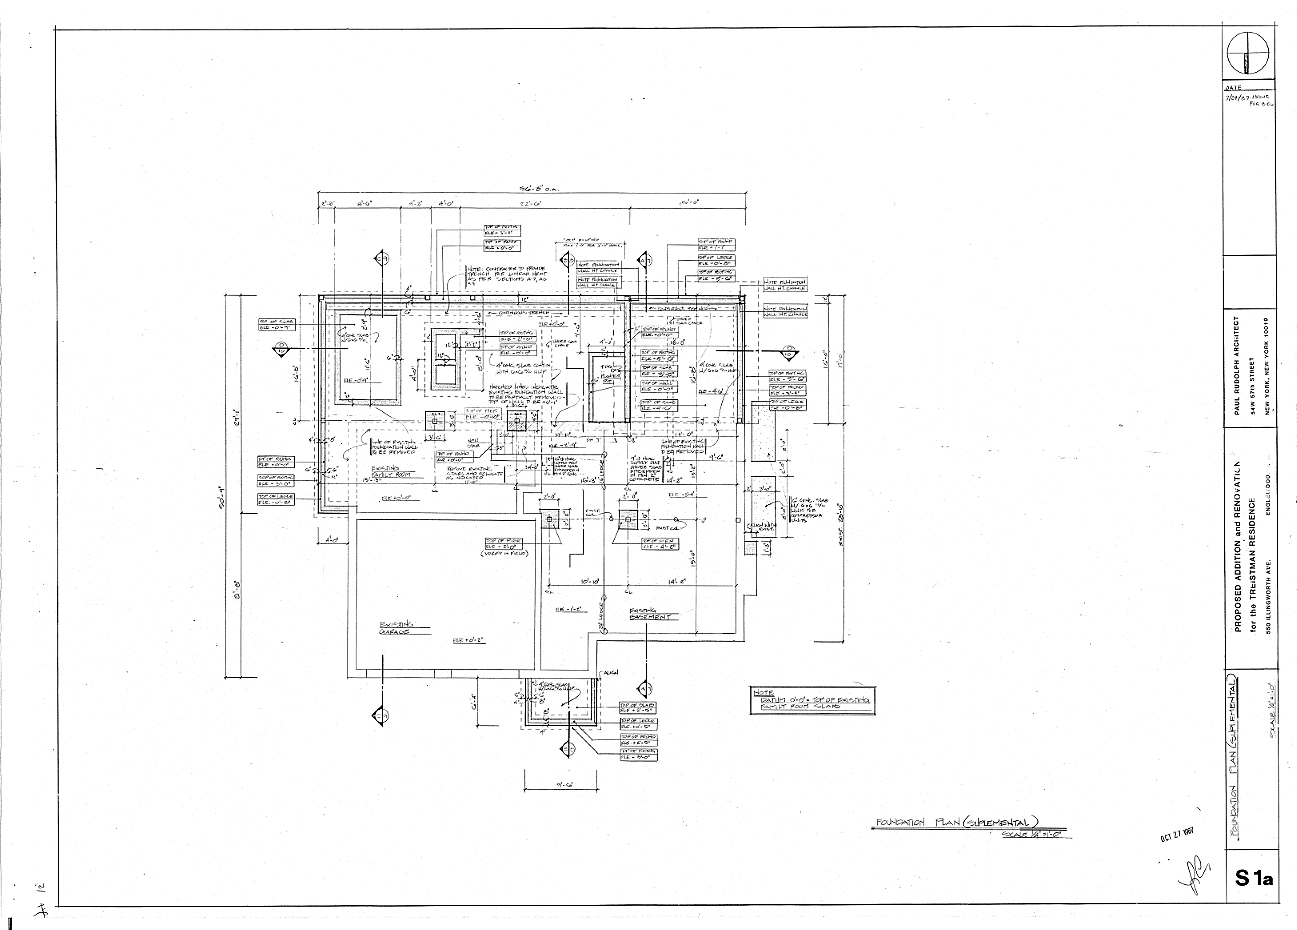 Residence for Mr. and Mrs. Treistman, Englewood, New Jersey.  Foundation Plan (Supplemental), Sheet S1a.